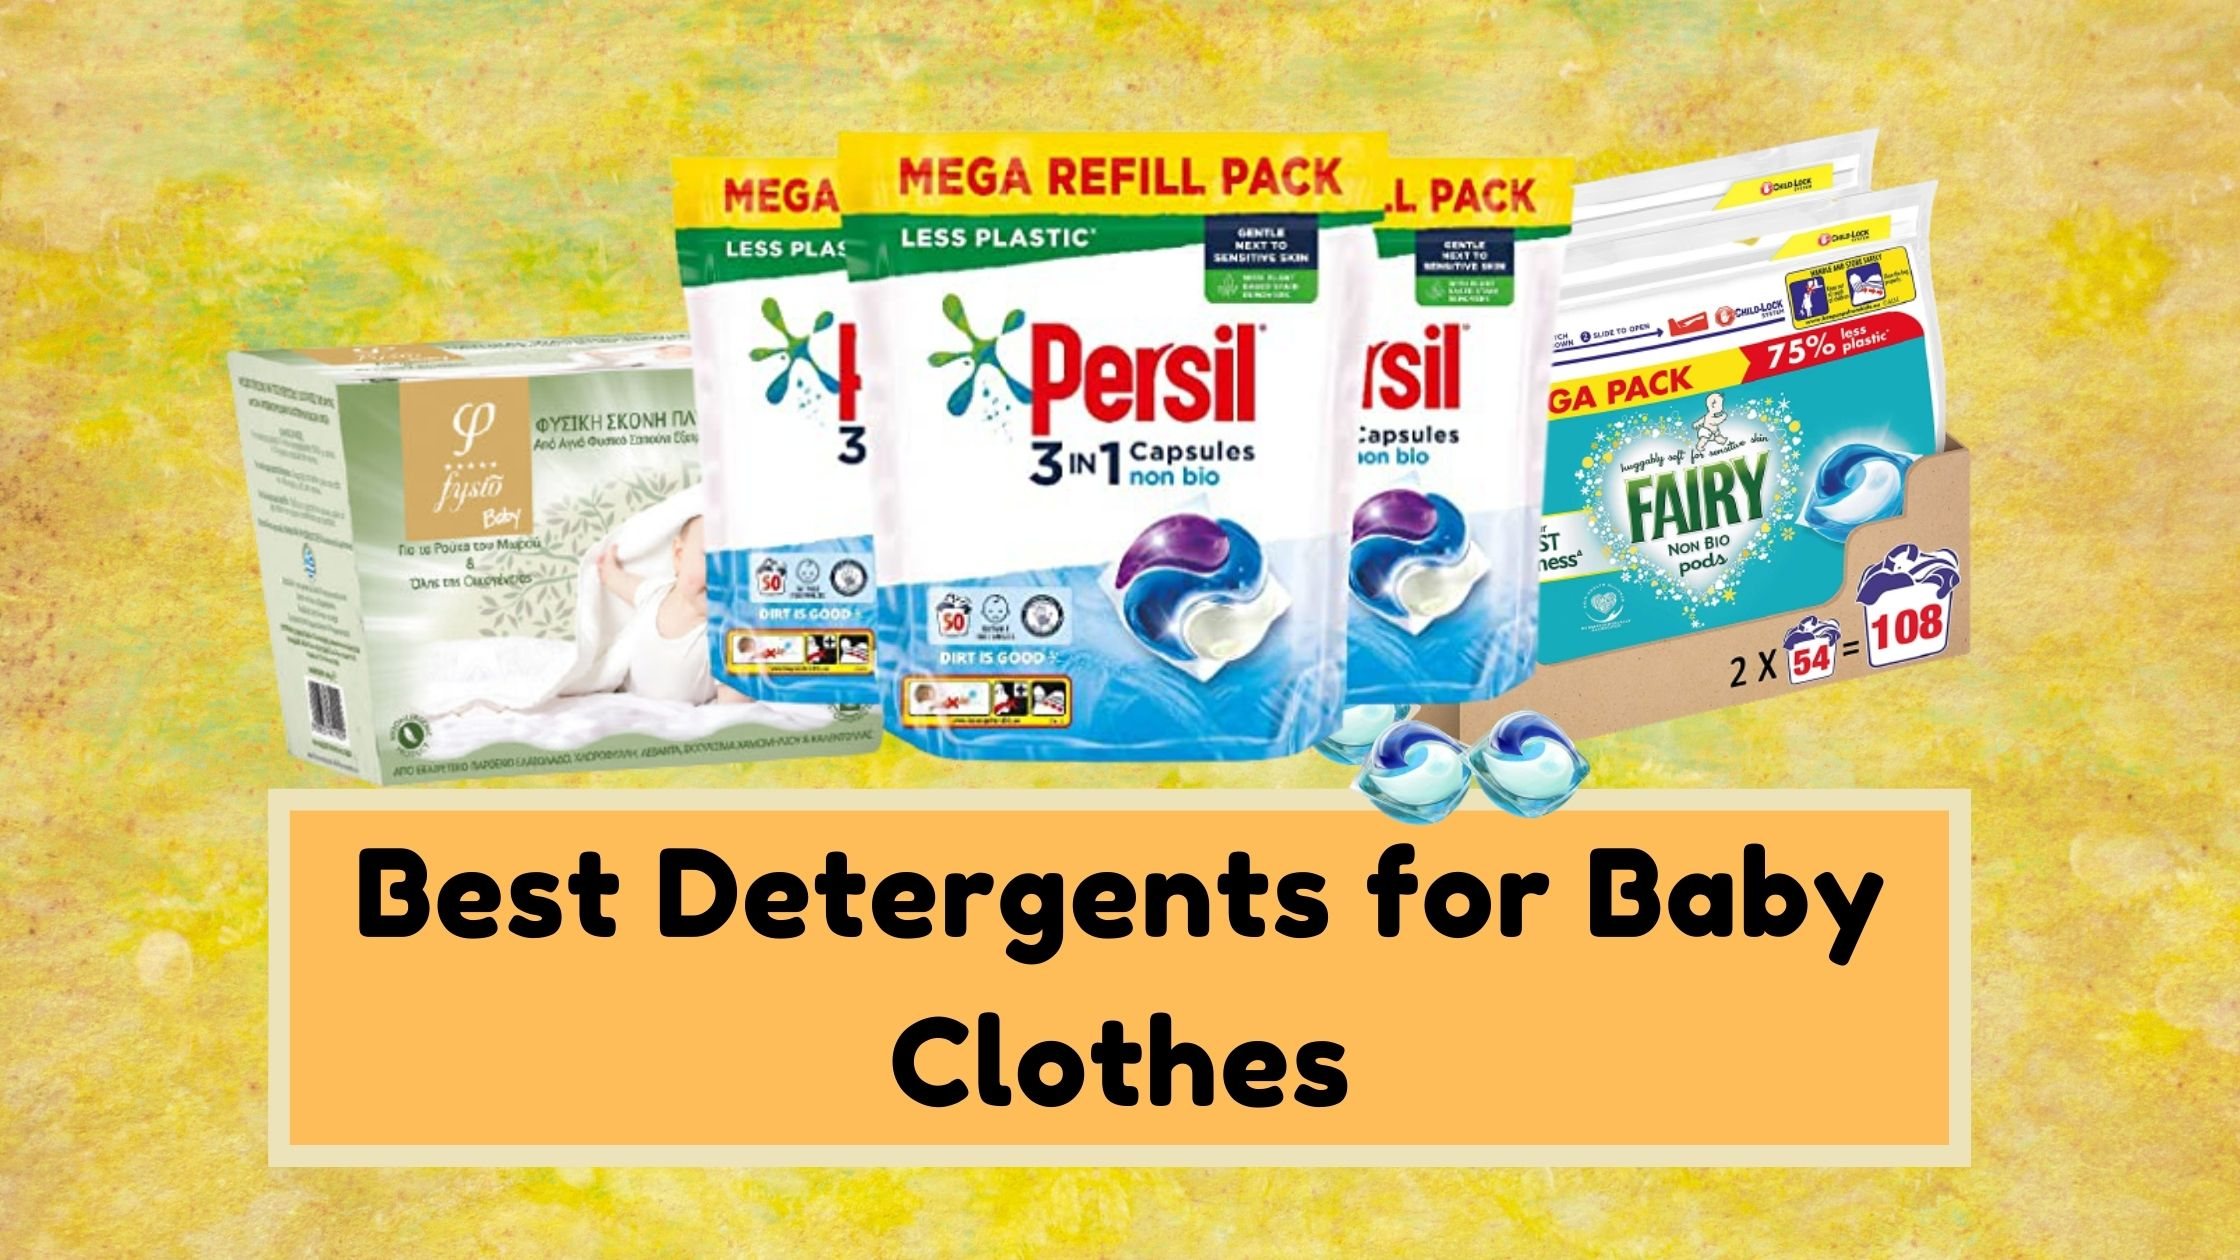 Best Detergents for Baby Clothes